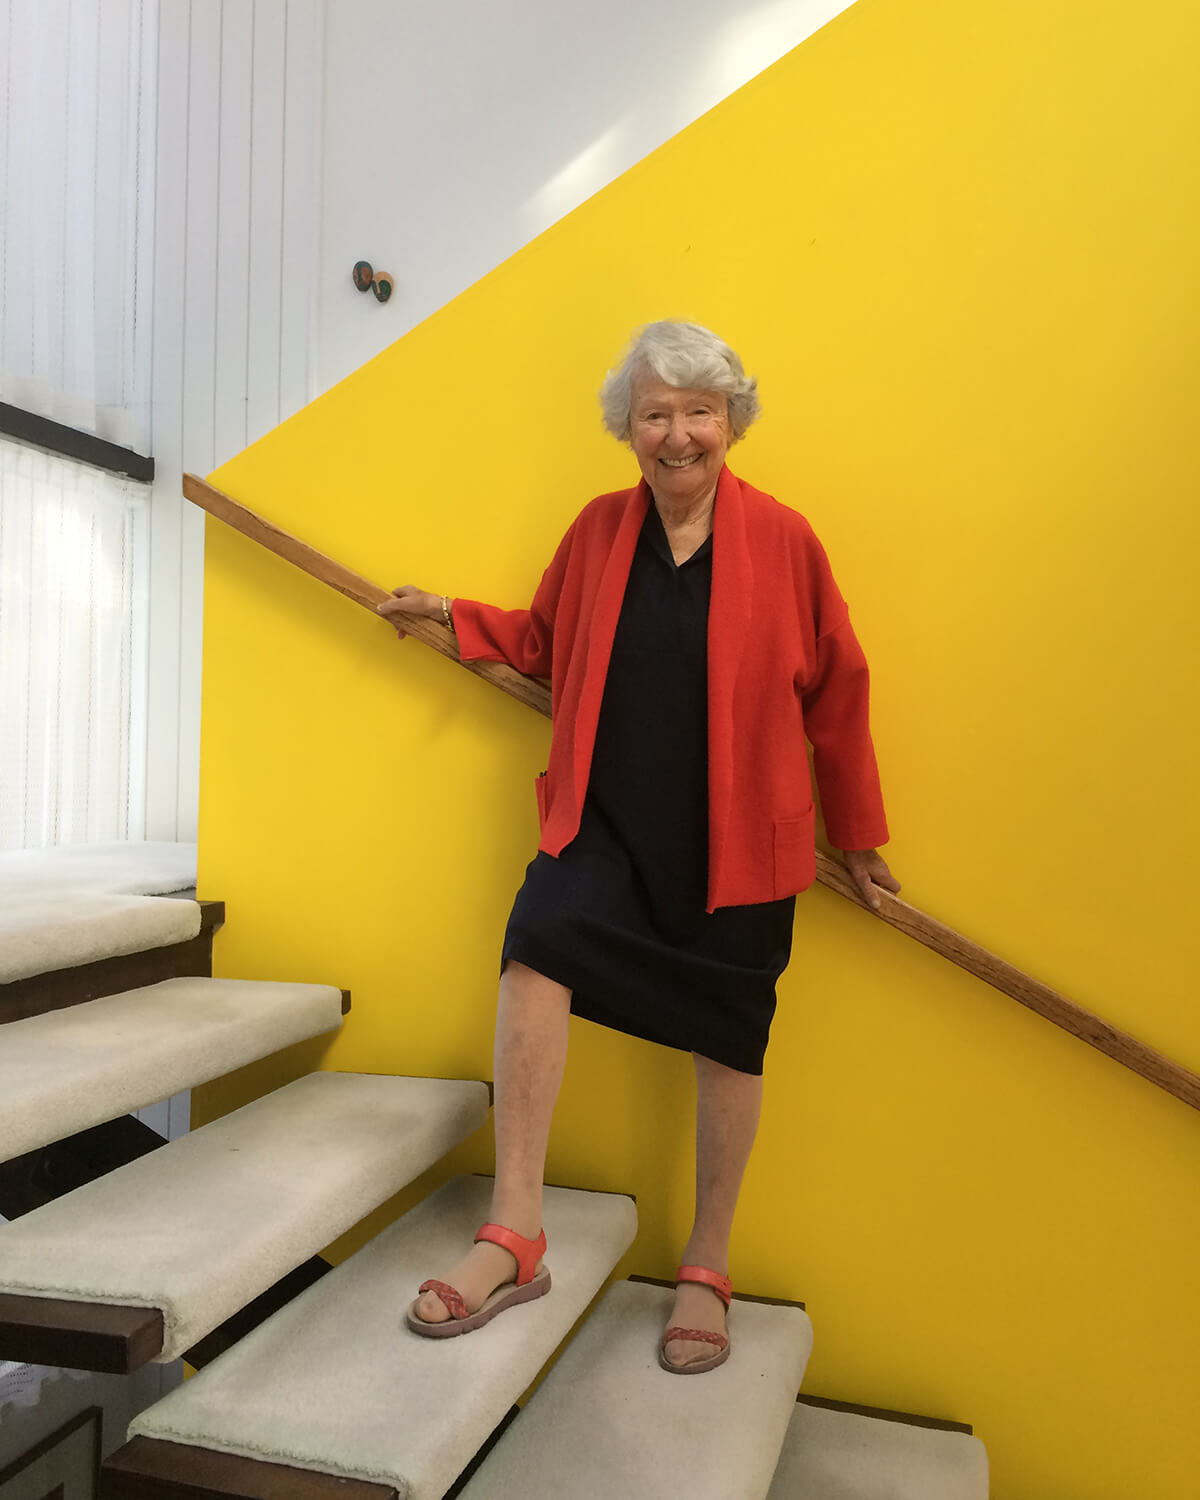 Cornelia Oberlander standing on a staircase in front of a yellow wall